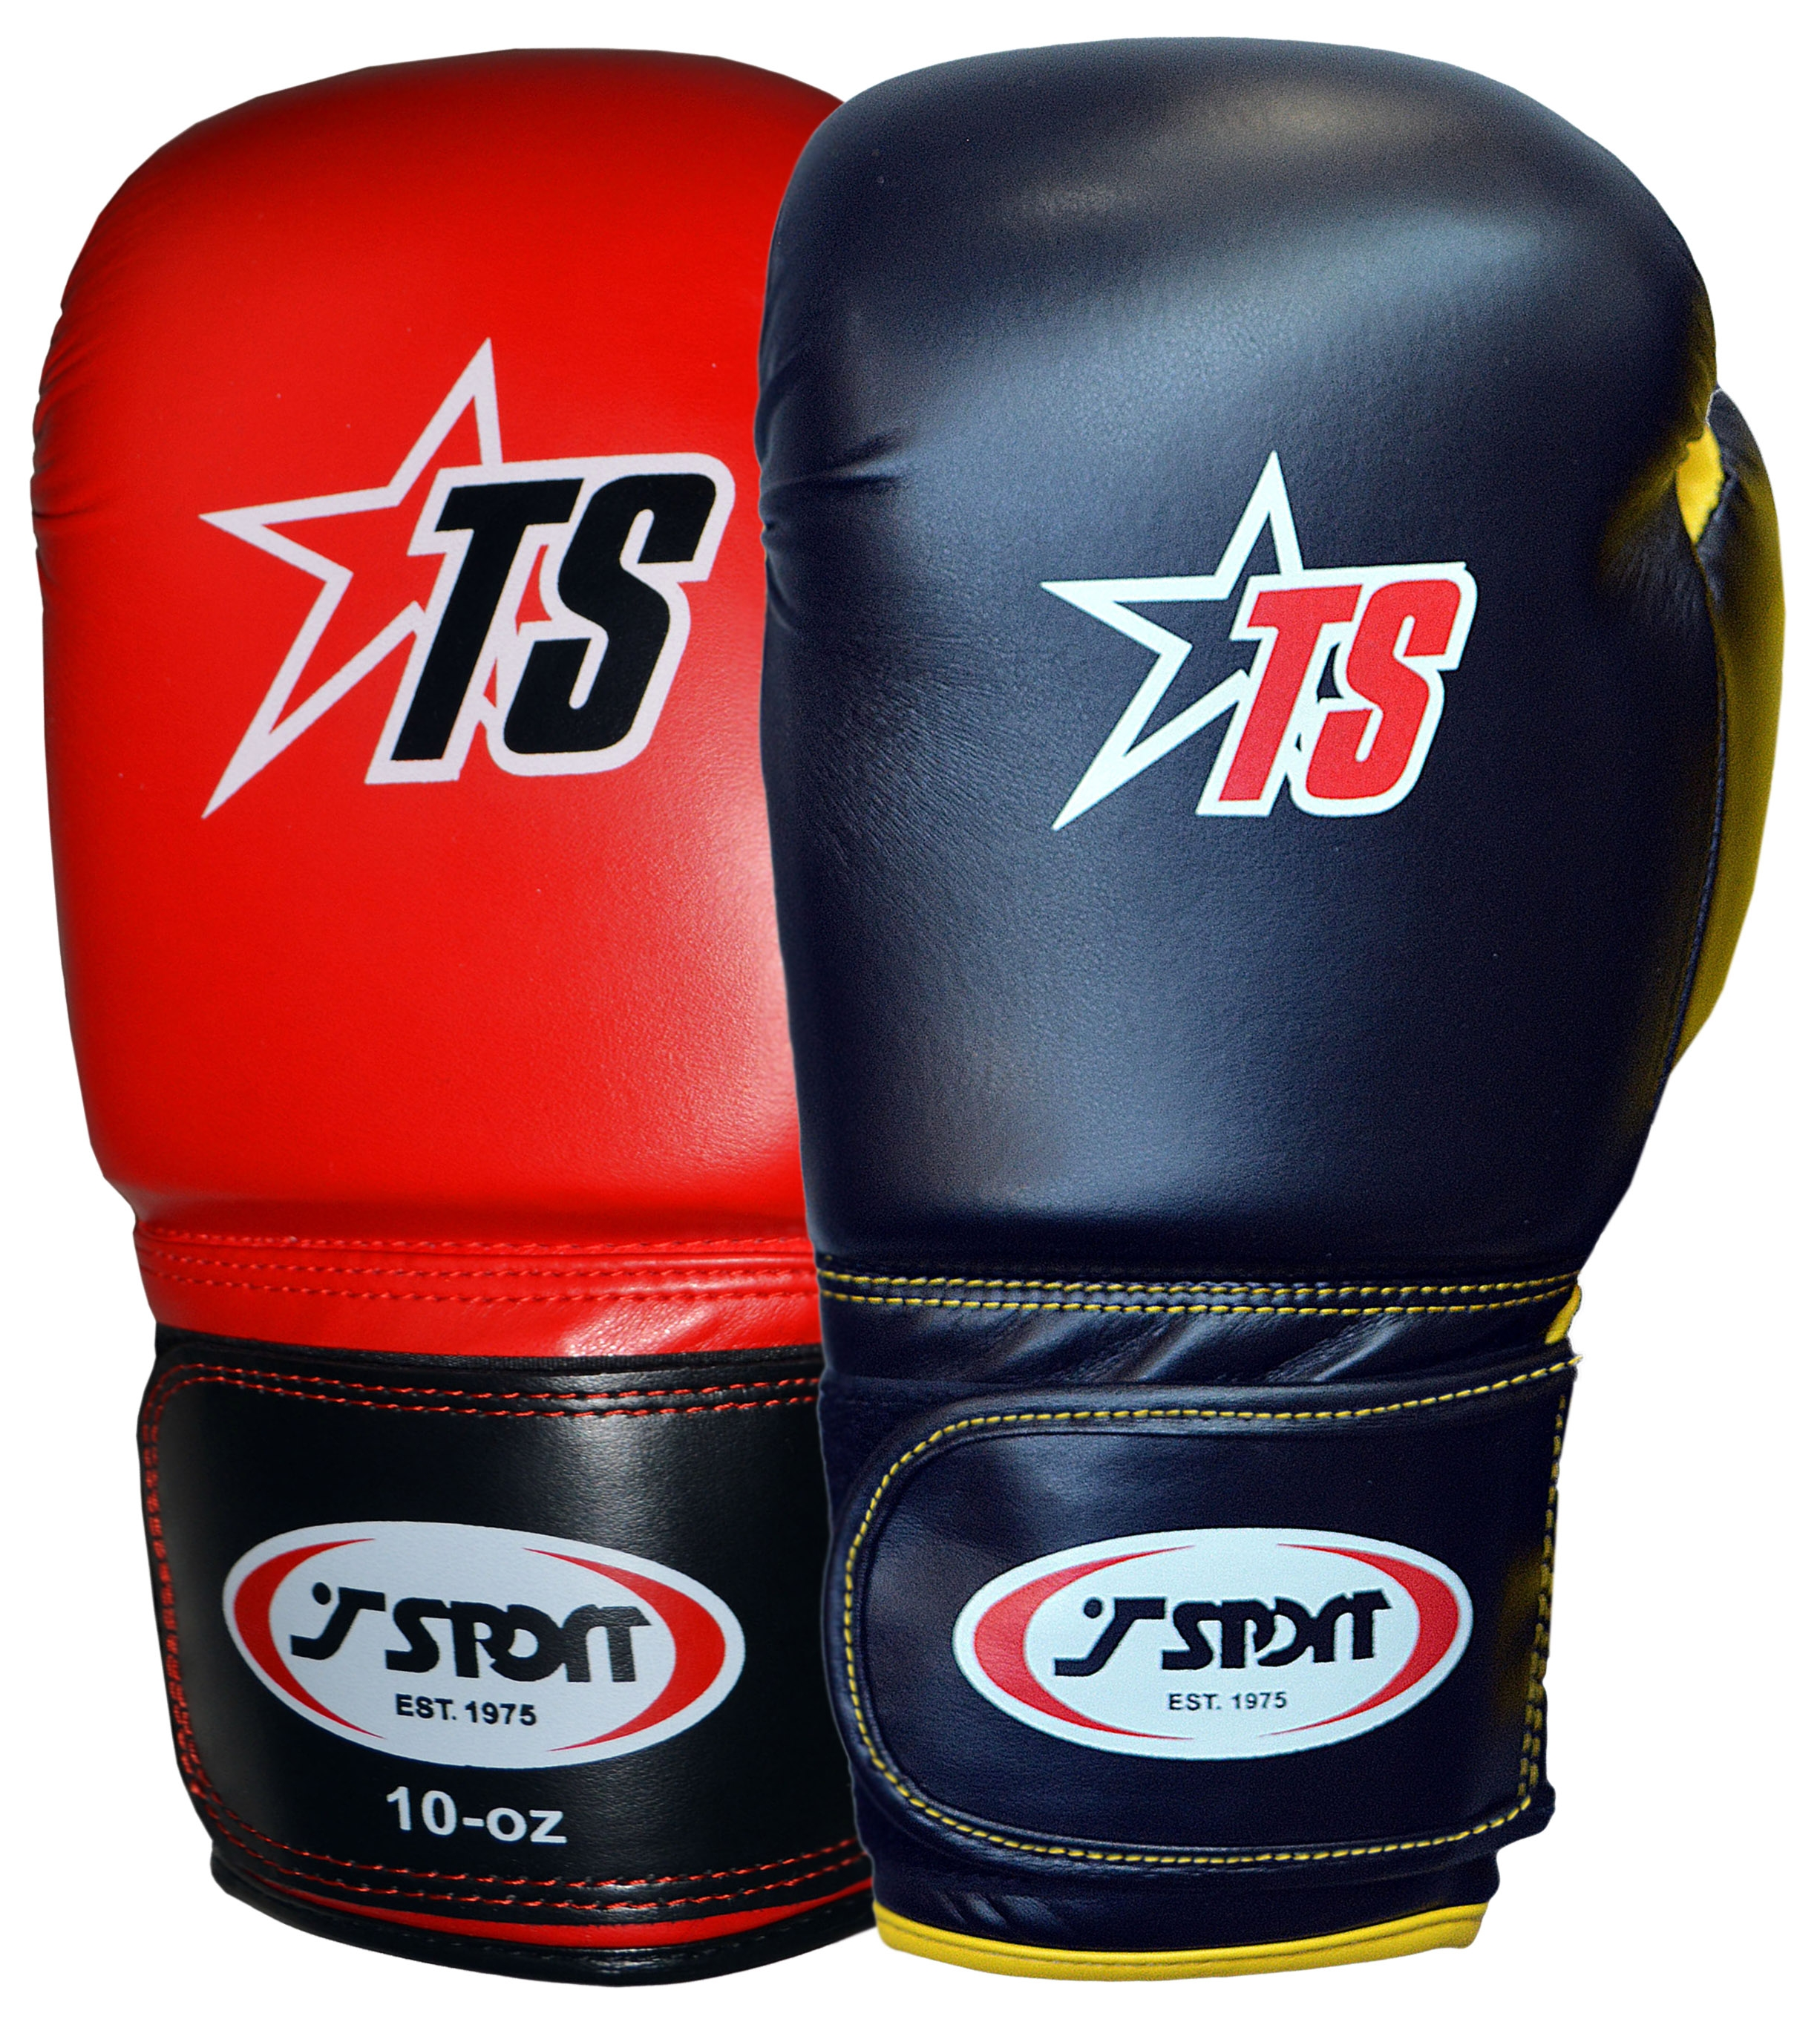 Sport Gloves Uk: T-Sport Artificial Leather Boxing Gloves